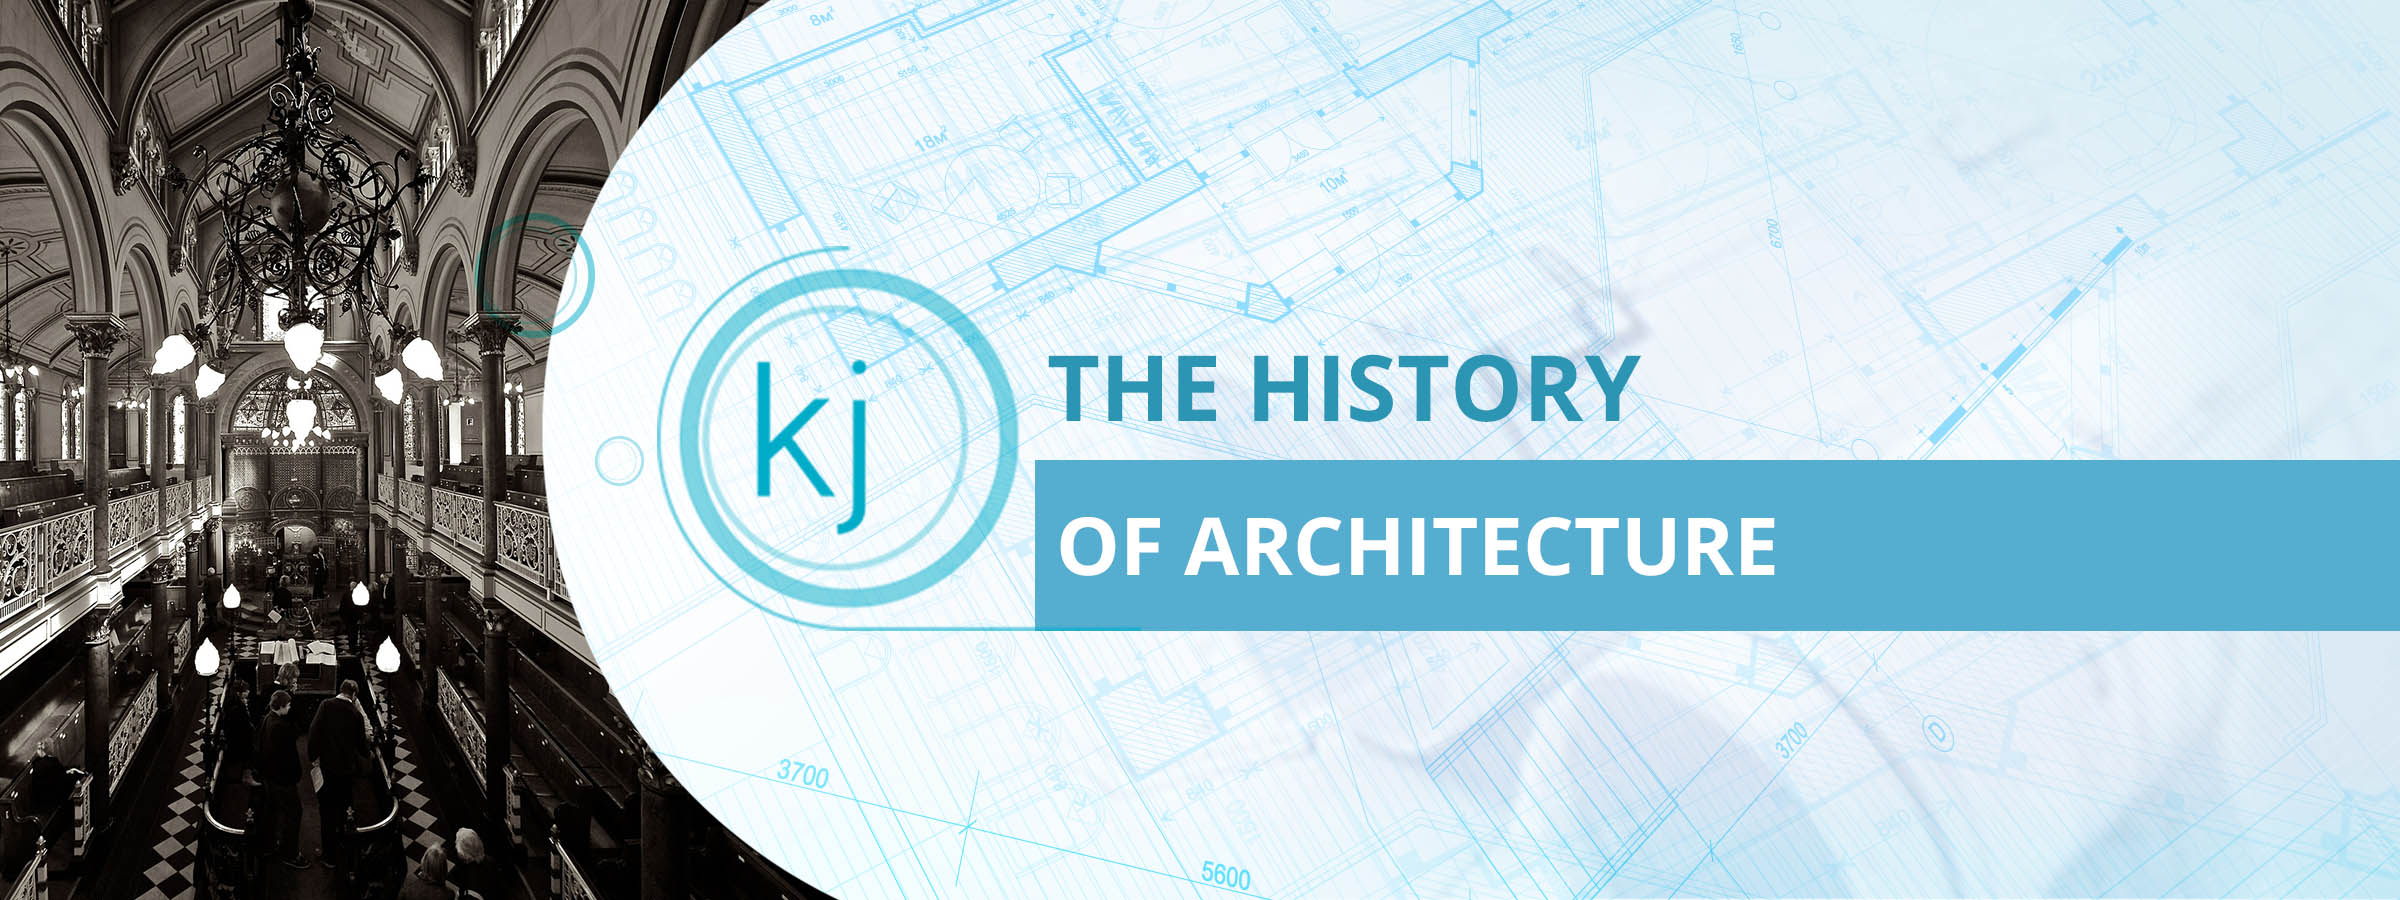 The History of Architecture